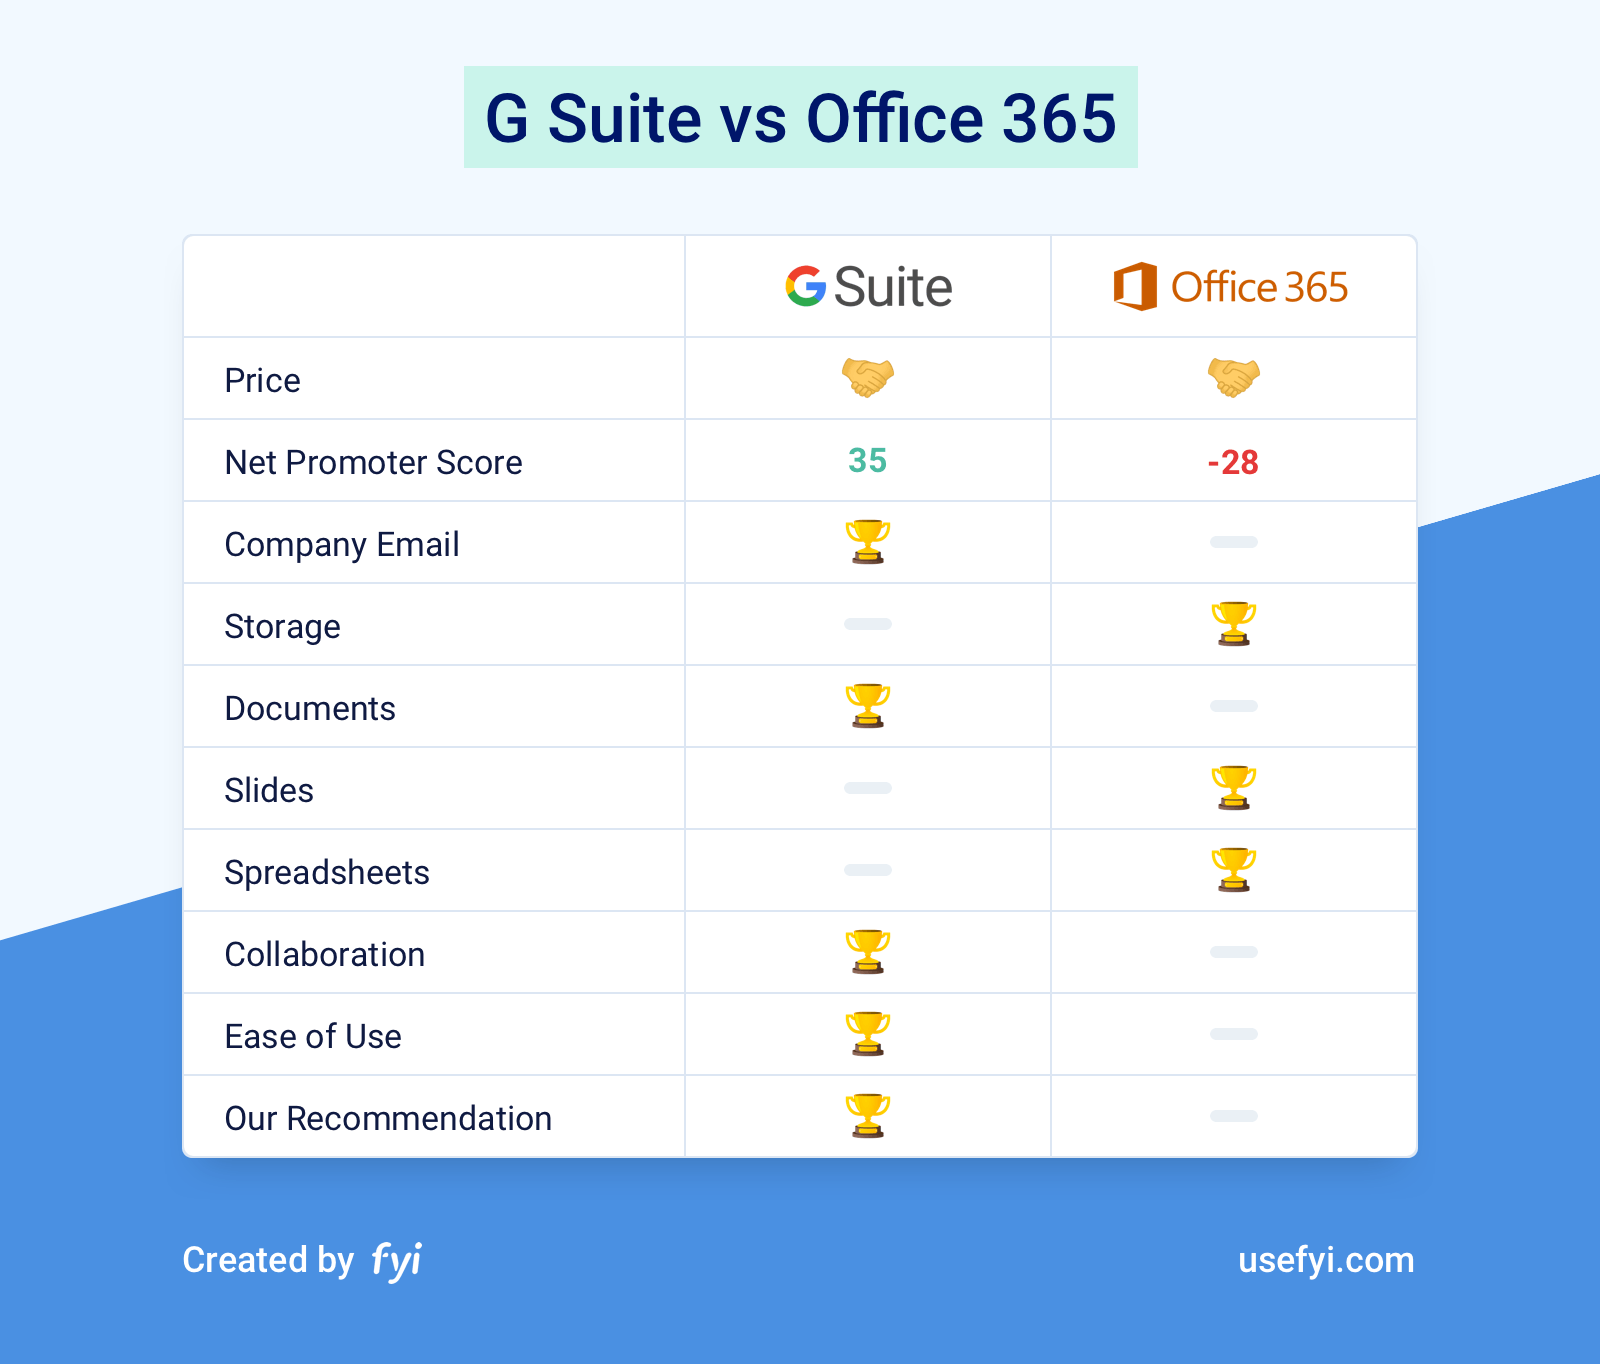 G Suite vs Office 365 Comparison Chart